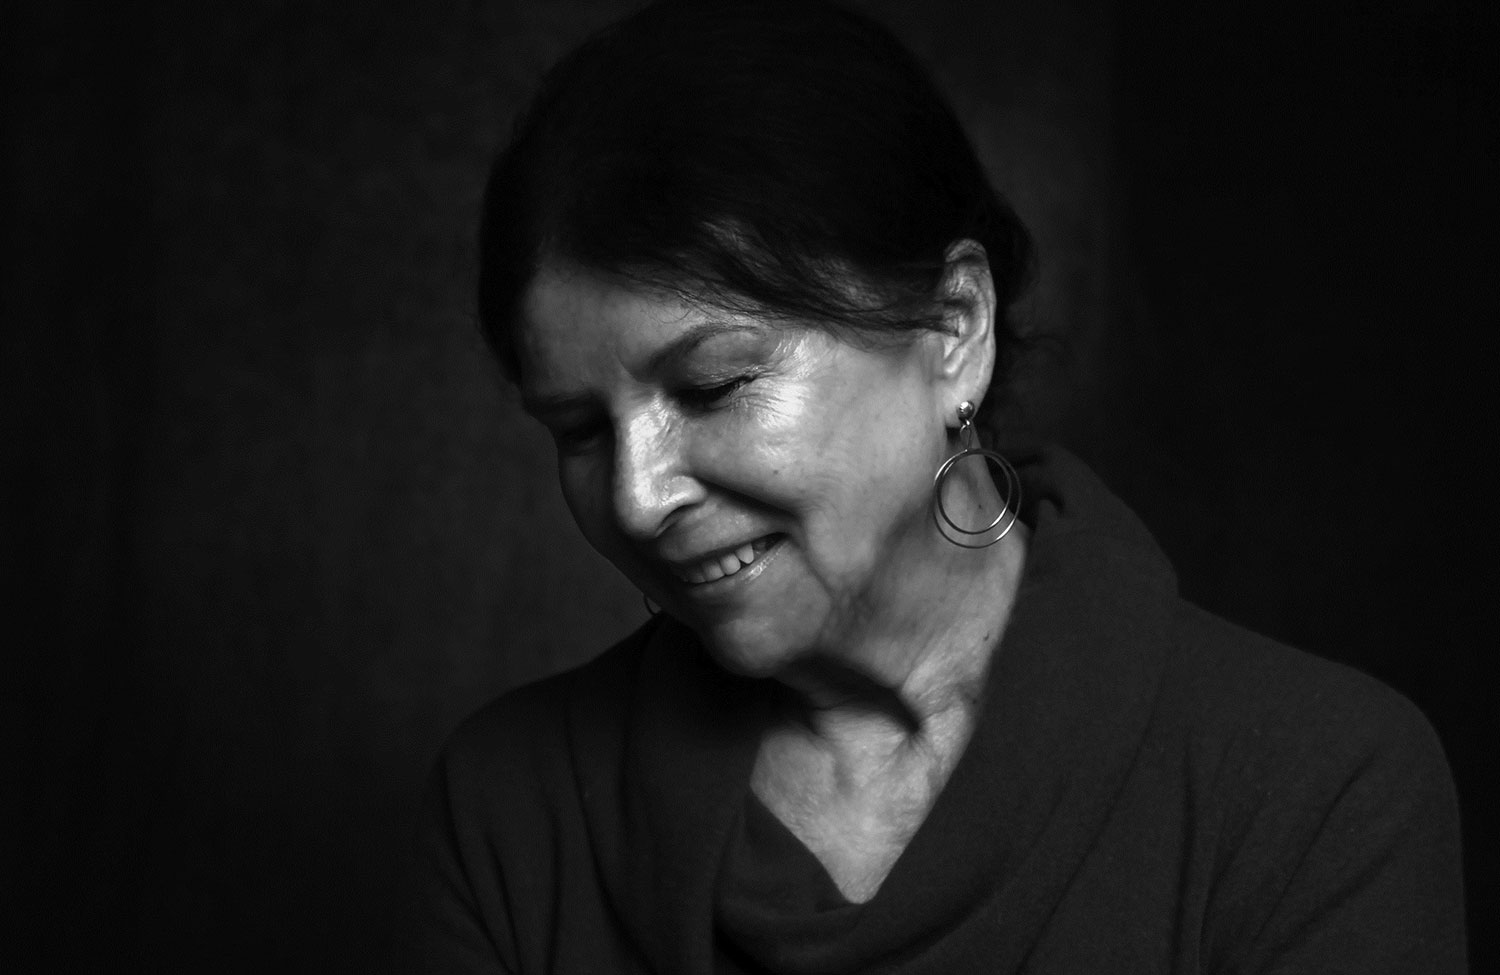 DON'T MISS THE ALANIS OBOMSAWIN EXHIBITION AT THE MMFA